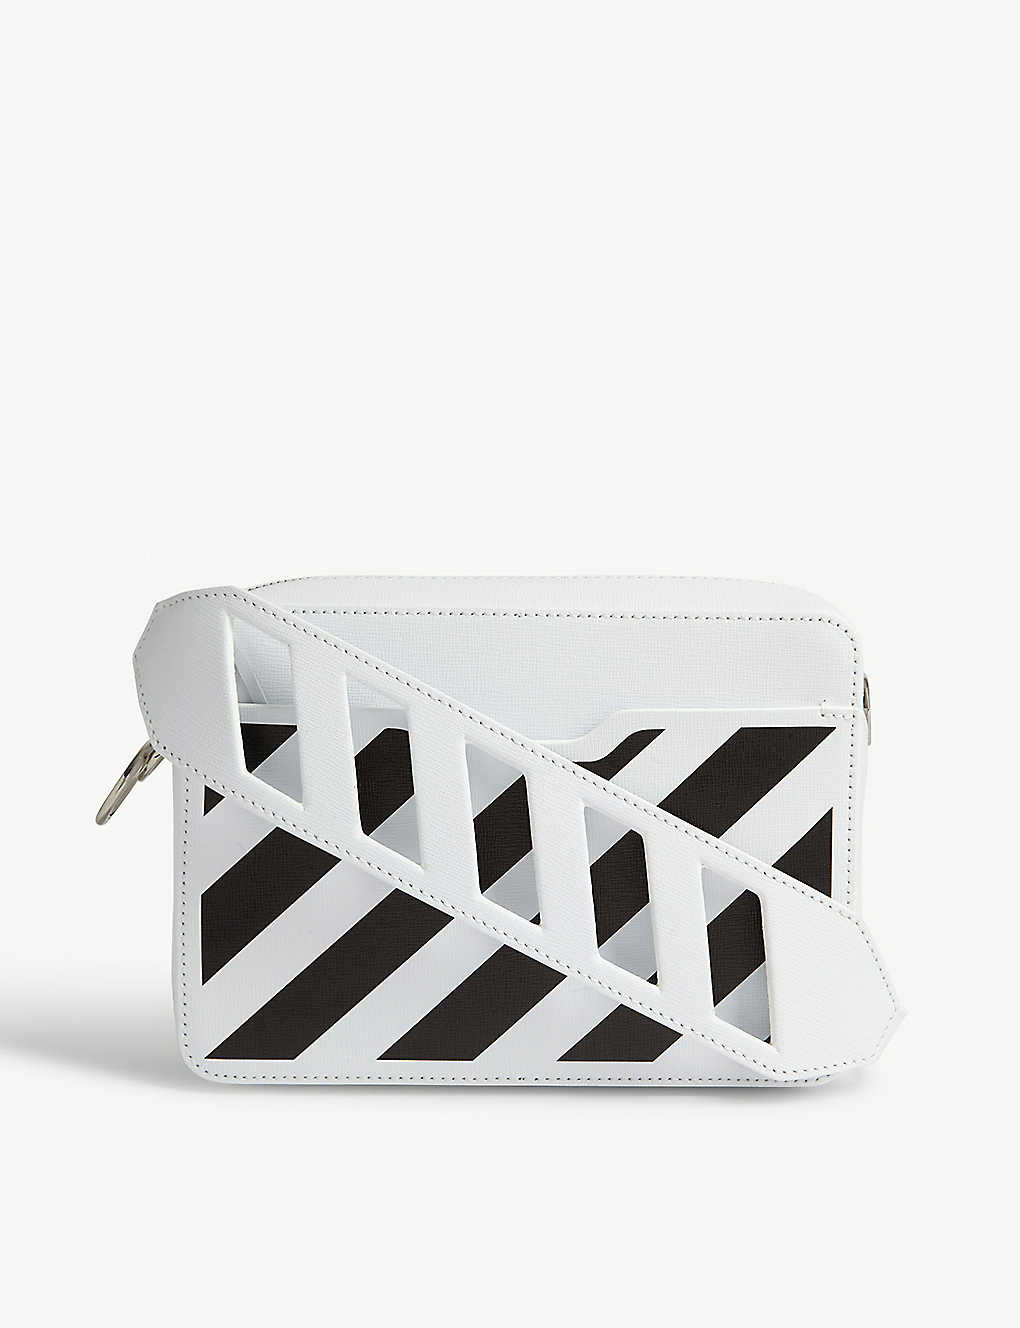 OFF WHITE CO VIRGIL ABLOH Striped leather cross body bag